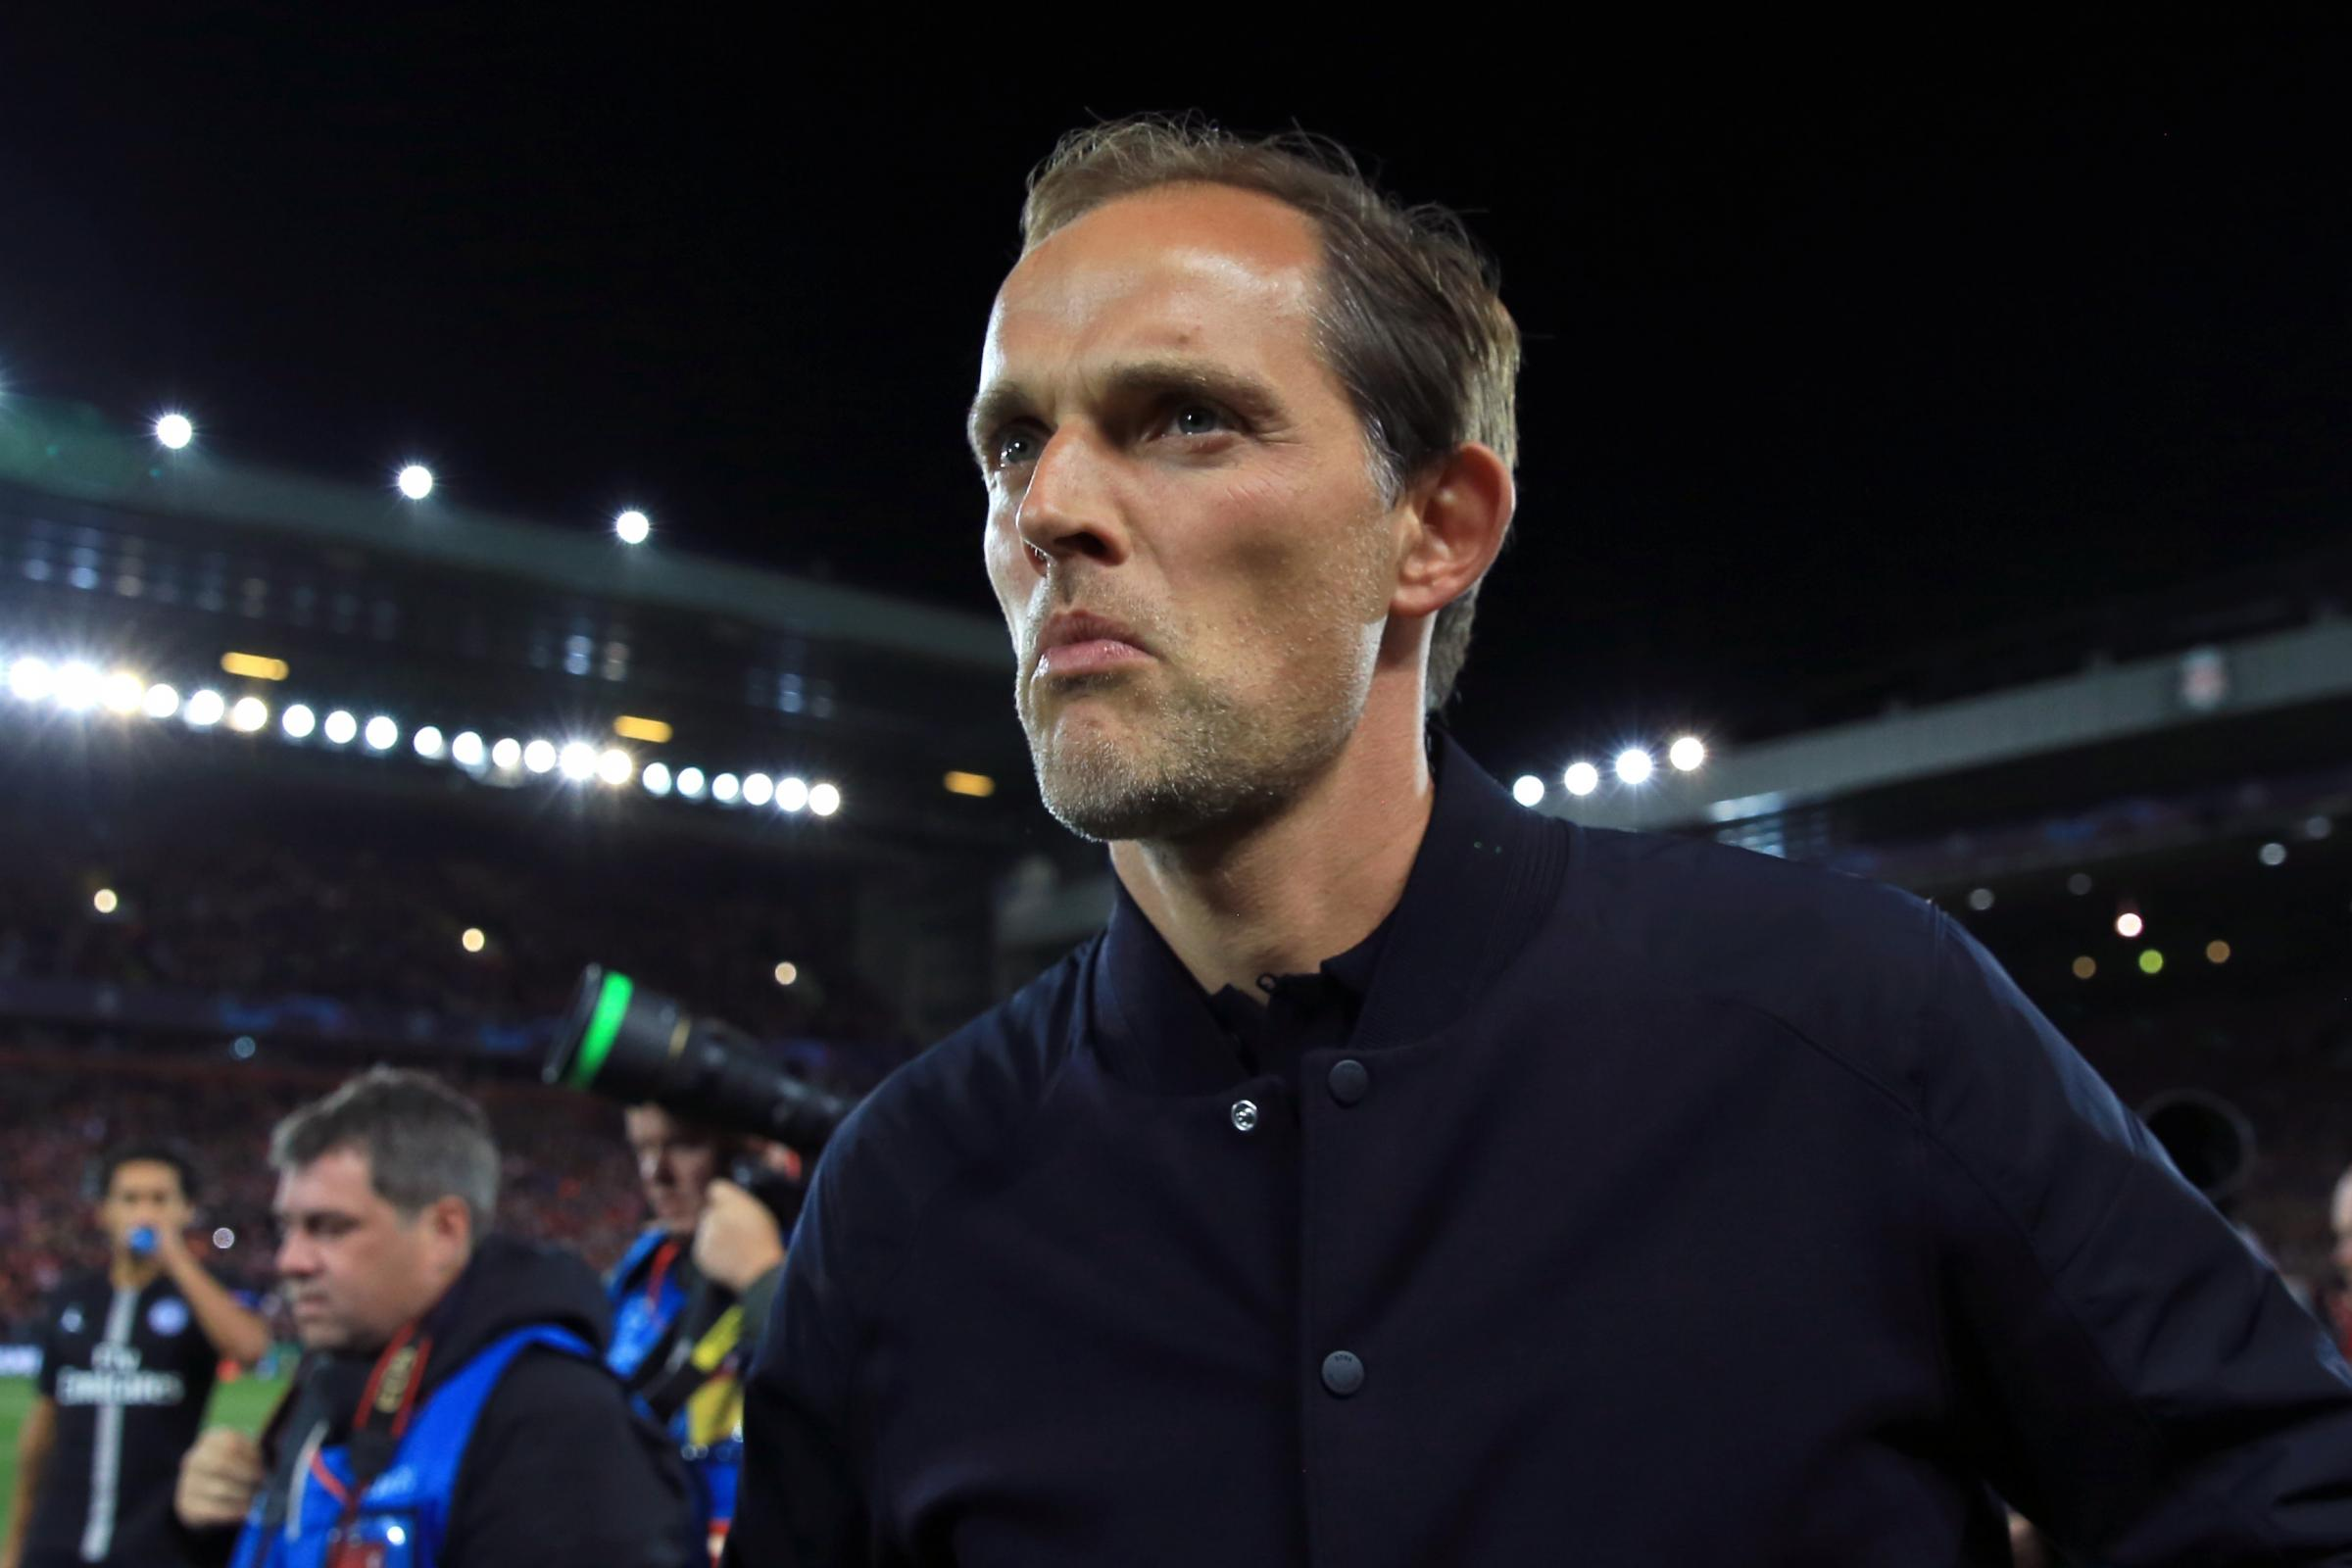 Thomas Tuchel remains unbeaten in Ligue 1 as Paris St Germain manager